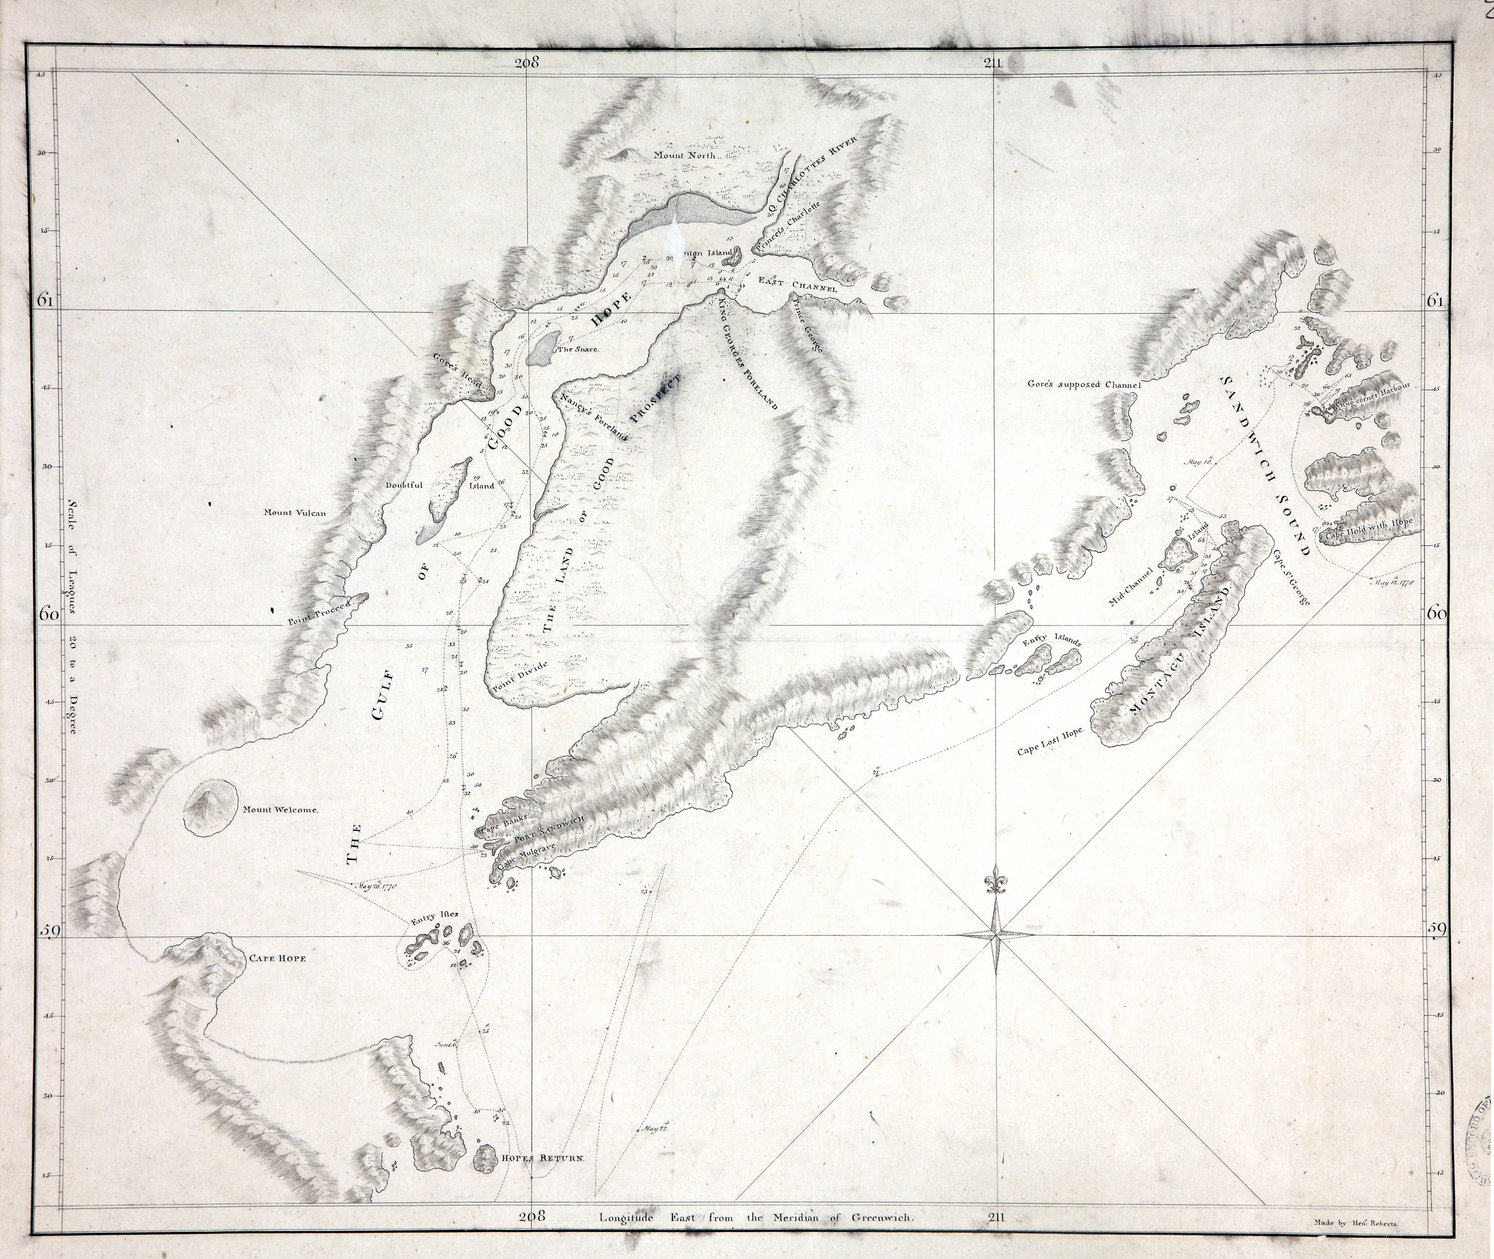 Sketch of the Gulf of Good Hope (now Cook Inlet) and Sandwich Sound (now Prince William Sound)